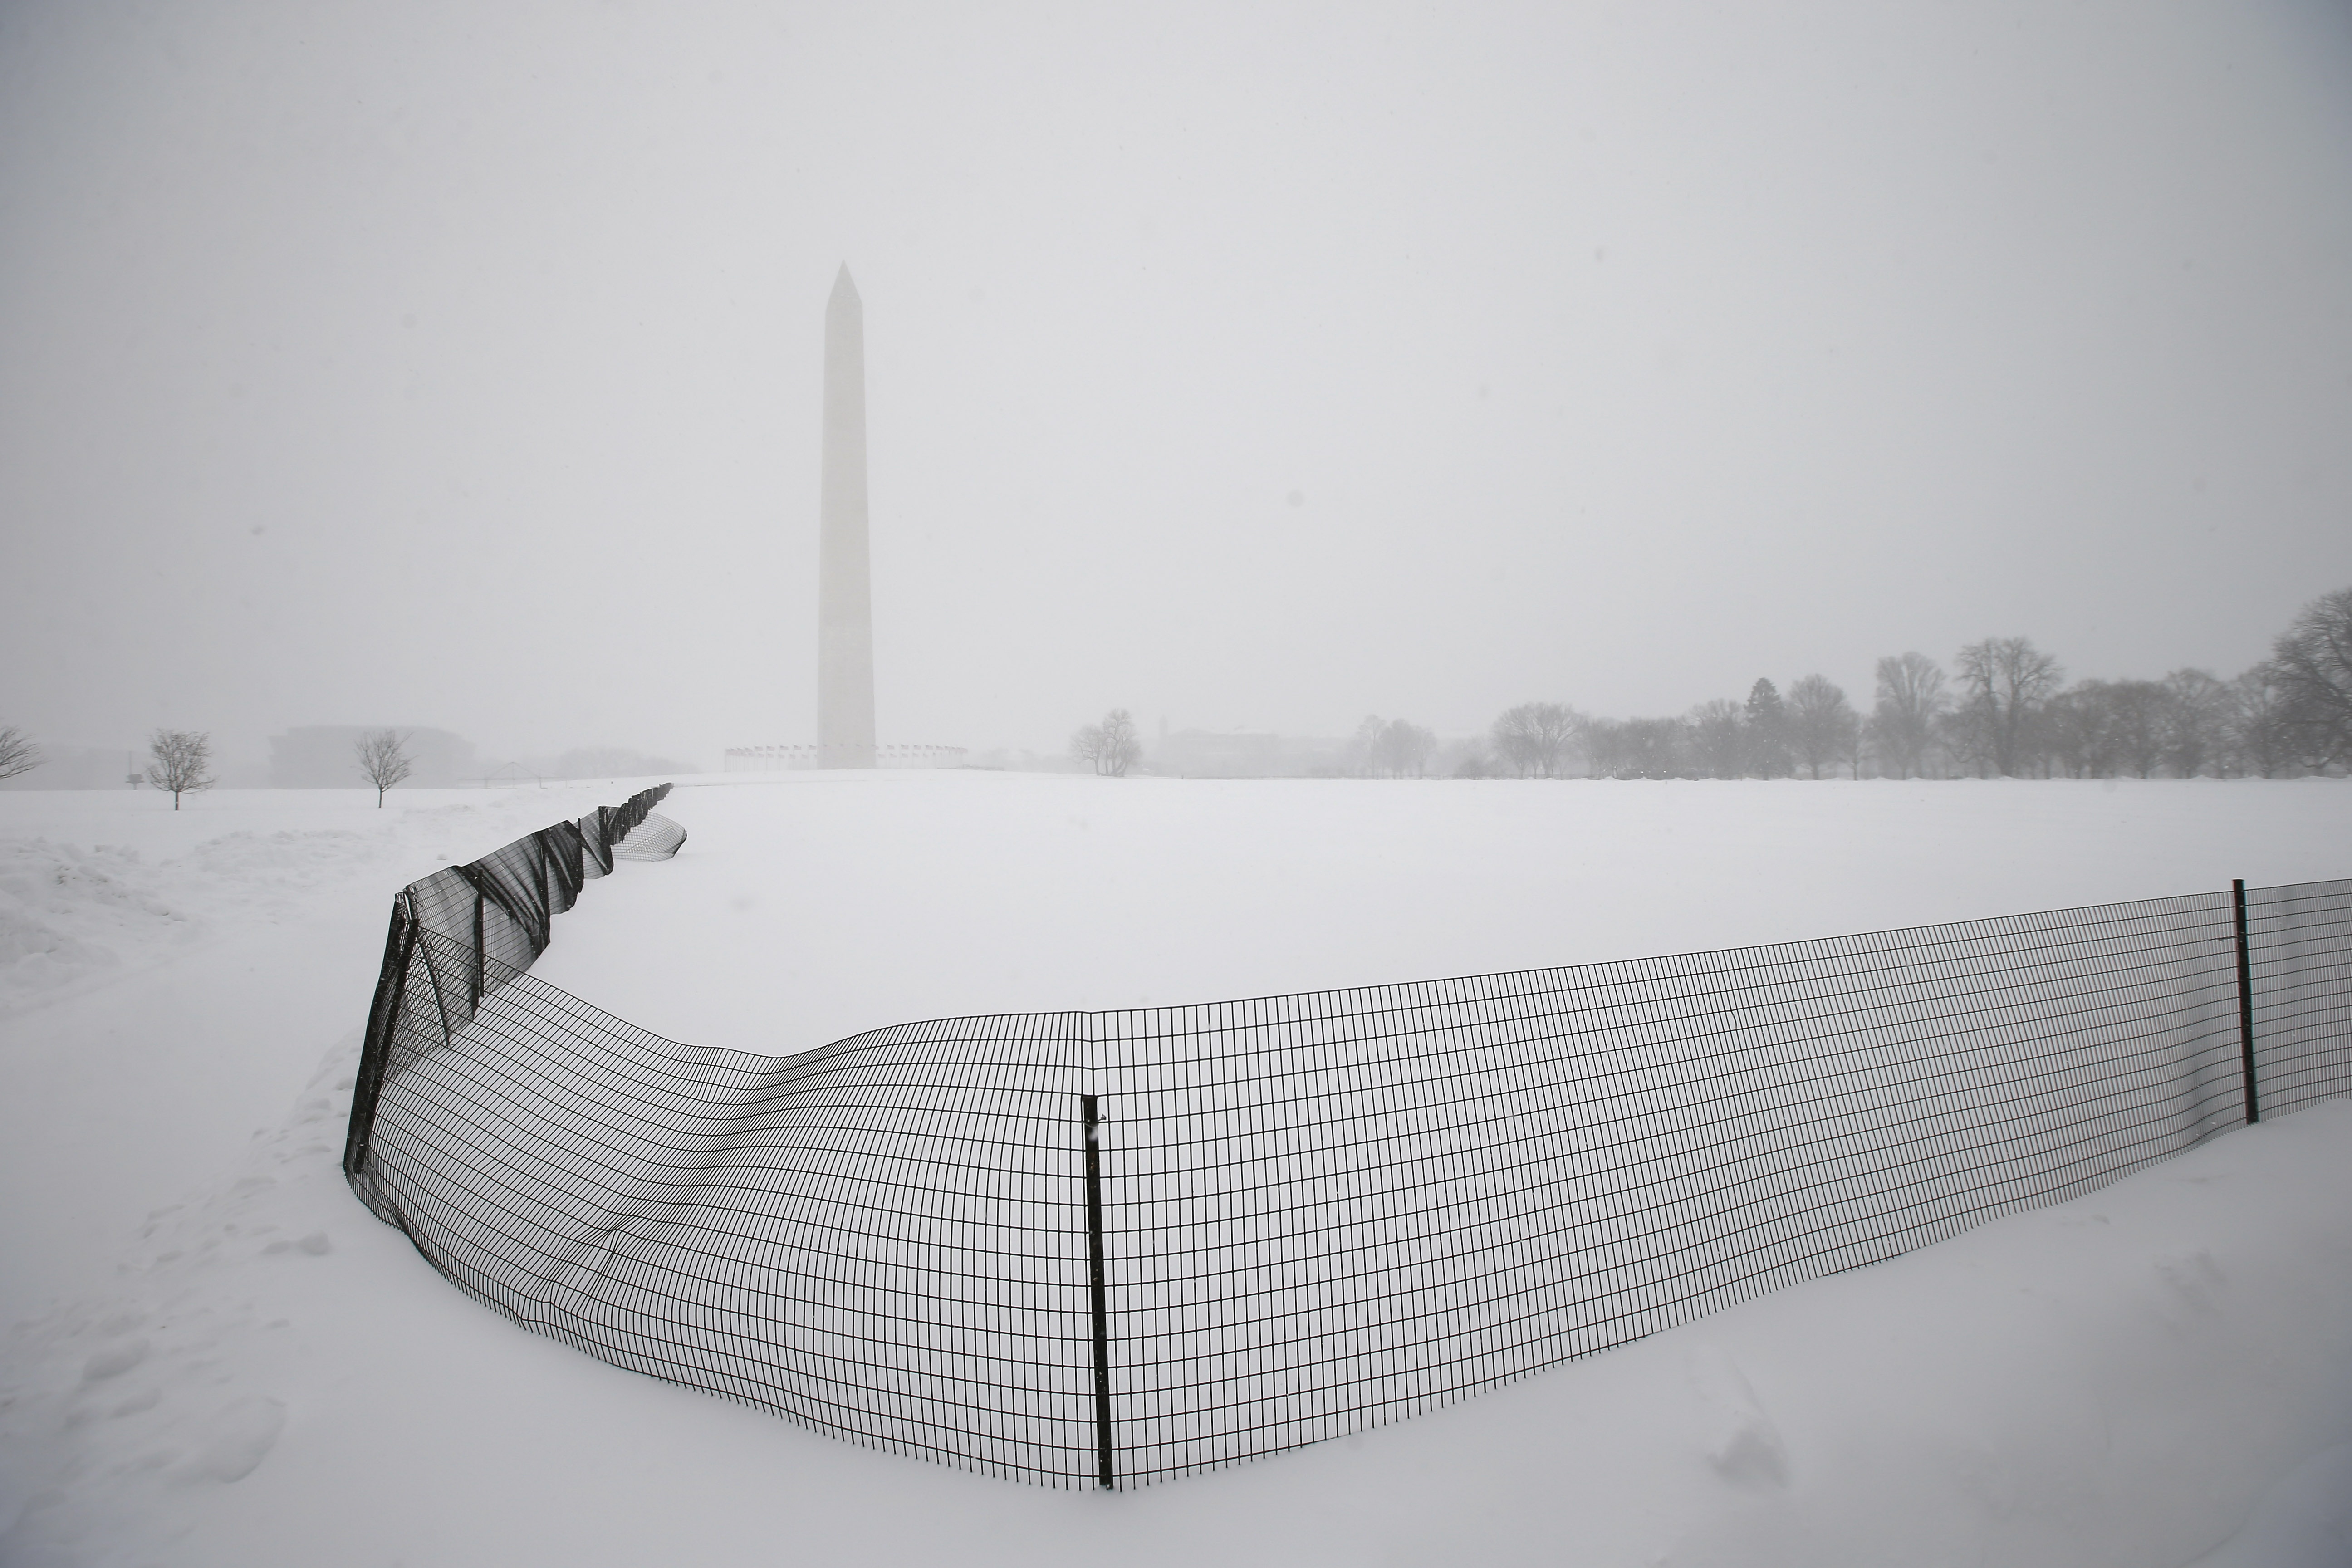 How much snow from D.C. blizzard could fit in Washington Monument?